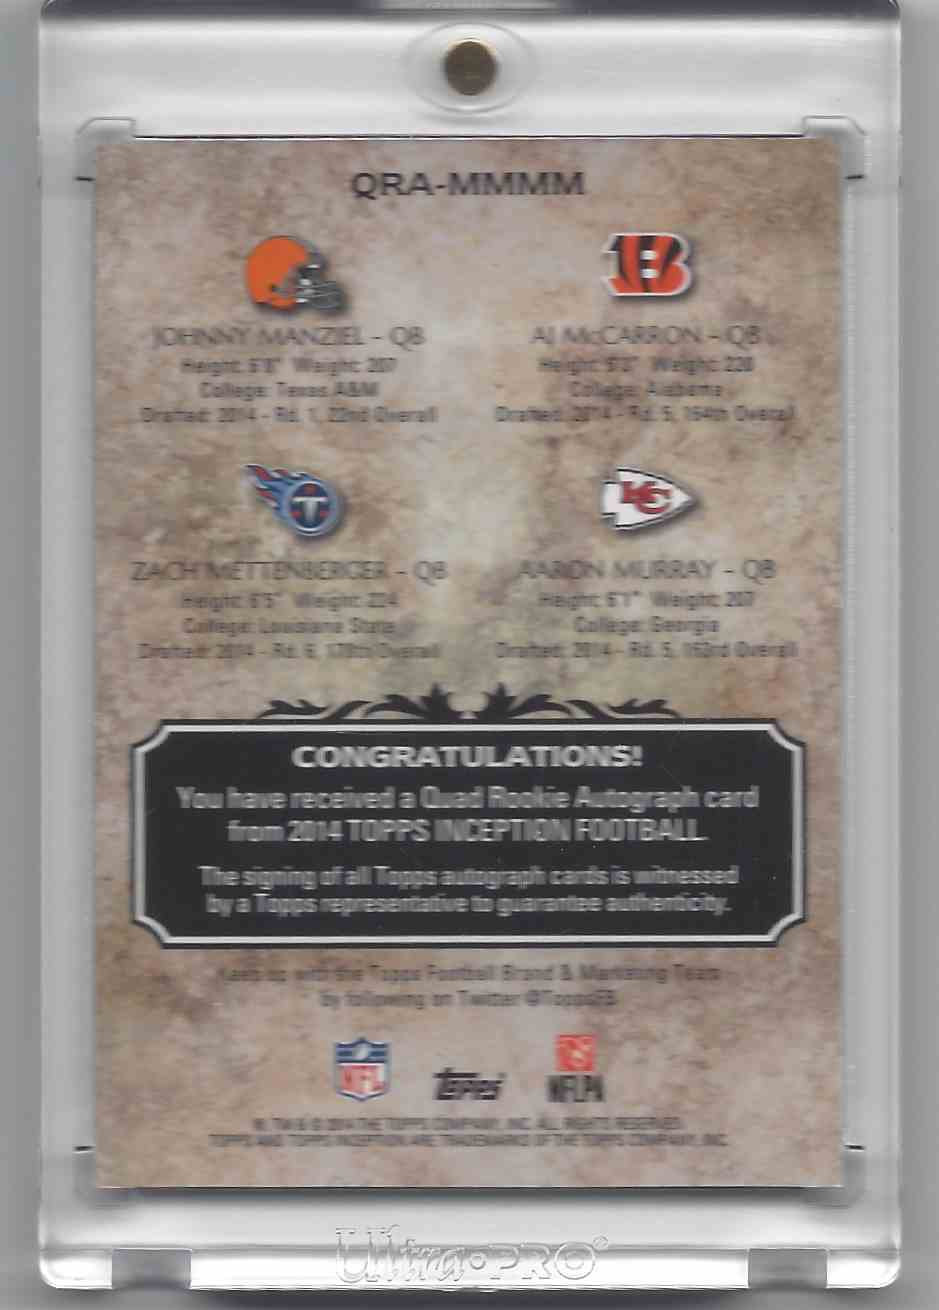 2014 Topps Inception Jonny Manziel Aj Mccarron Aaron Murray #QRAMMMM card back image